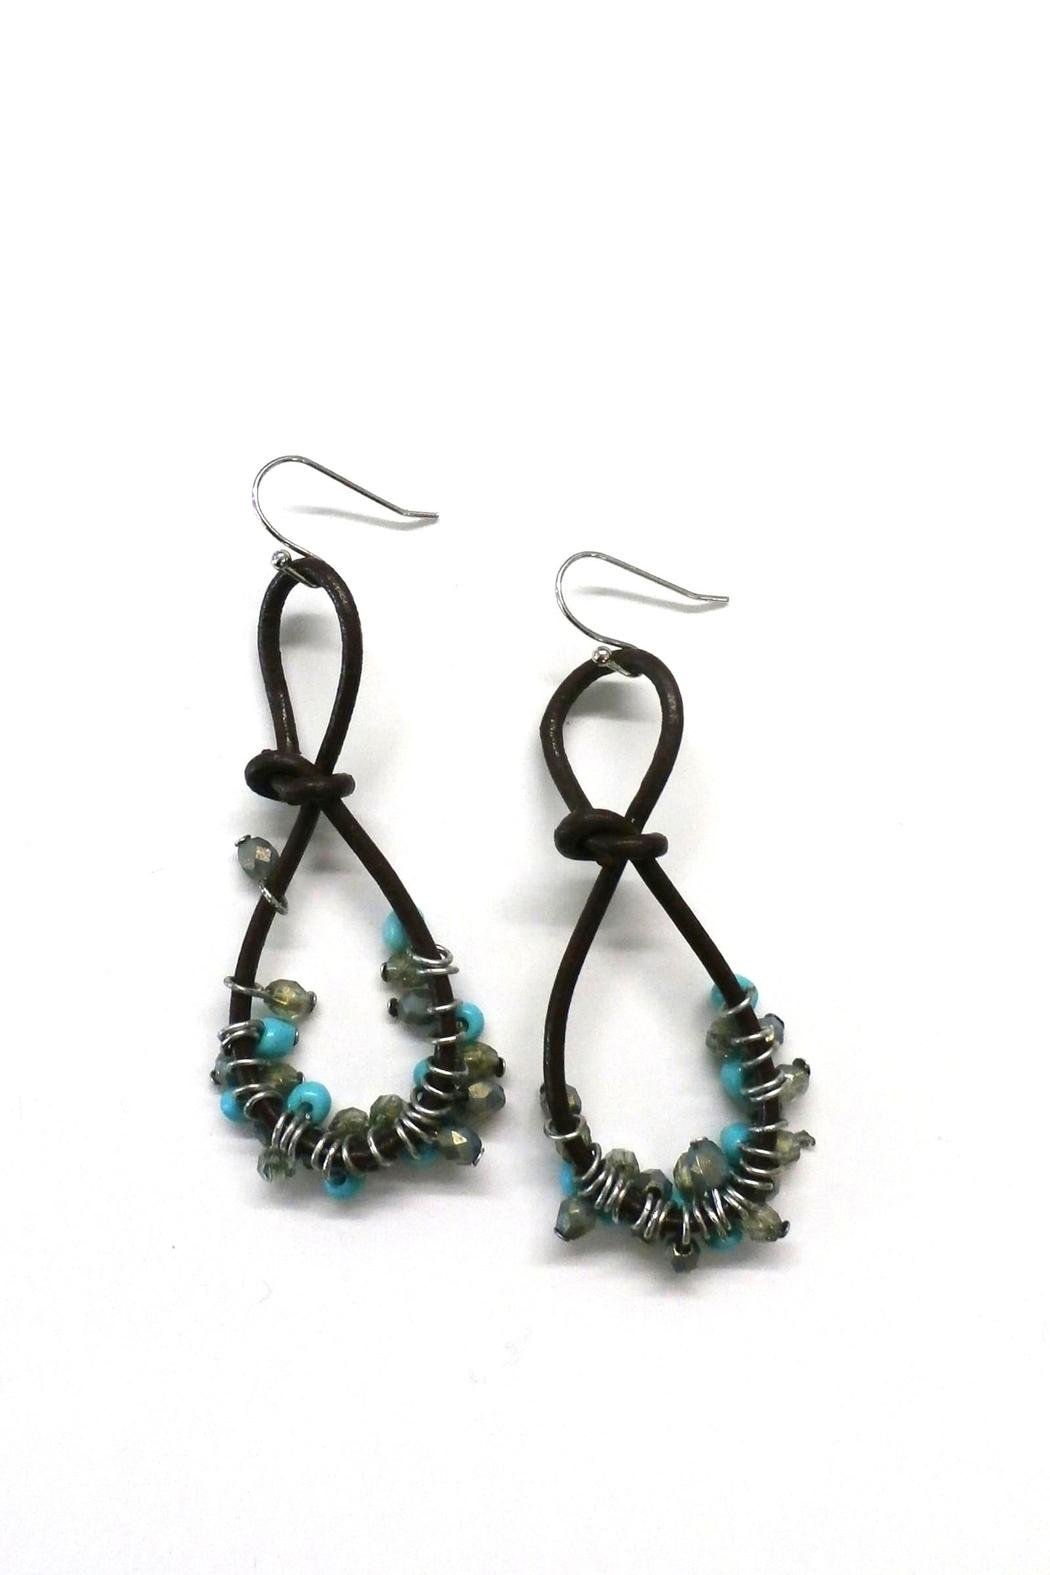 Leather Cord Earrings From Nashville By Tortuga Designs